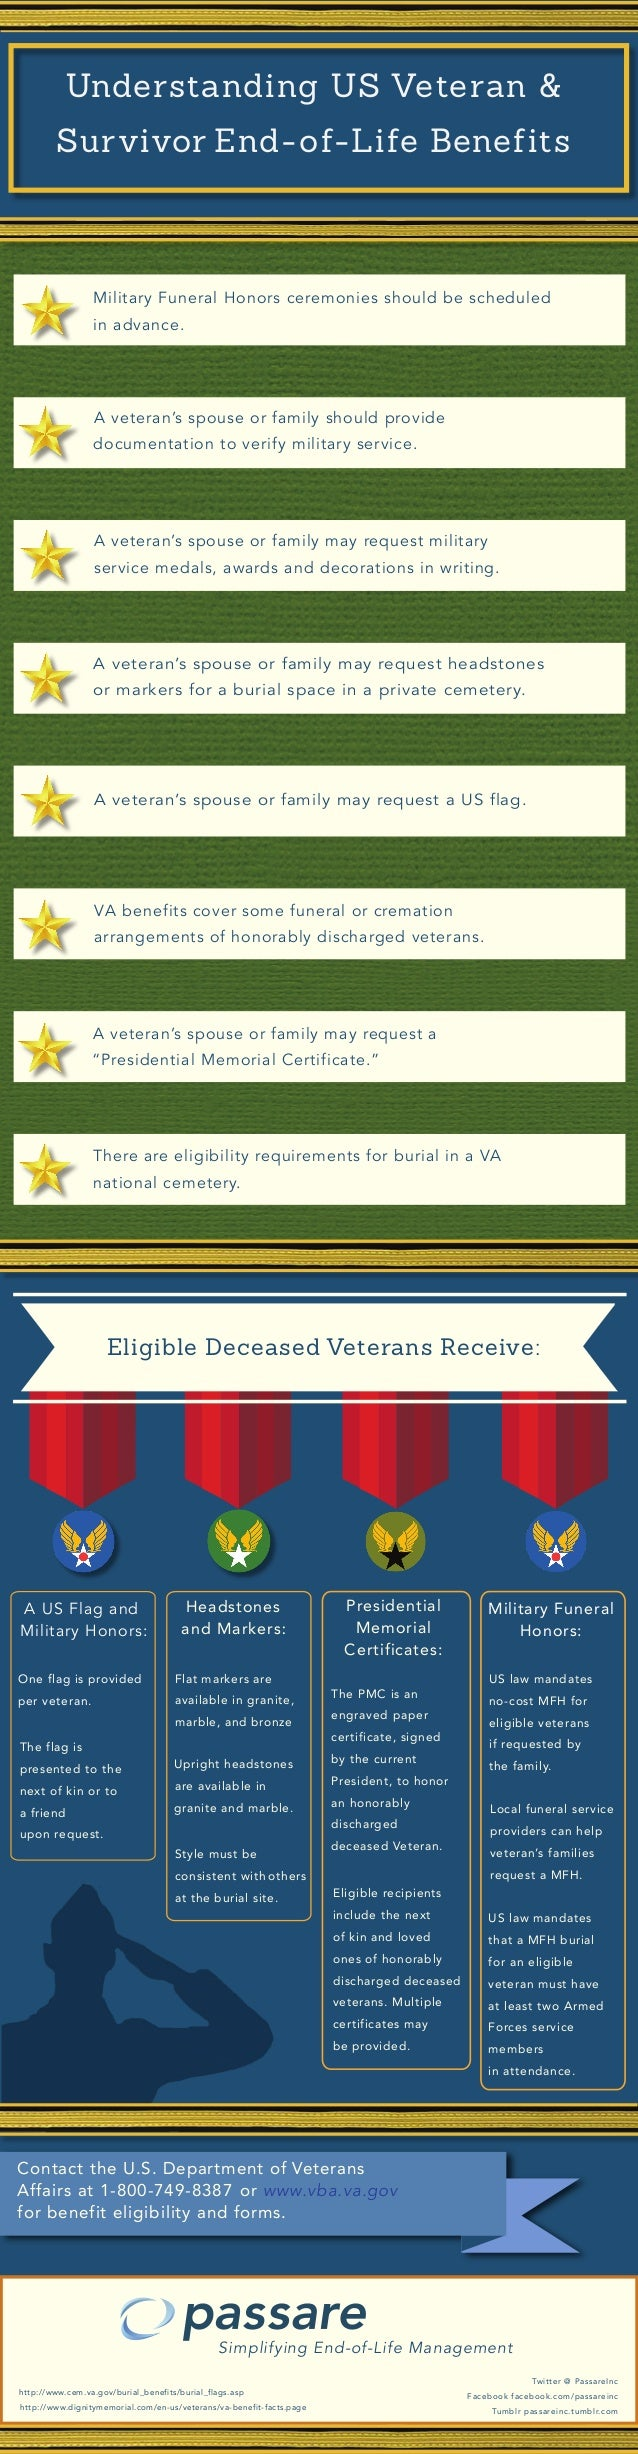 Eligible Deceased Veterans Receive: A US Flag and Military Honors: Military Funeral Honors: One flag is provided per veter...